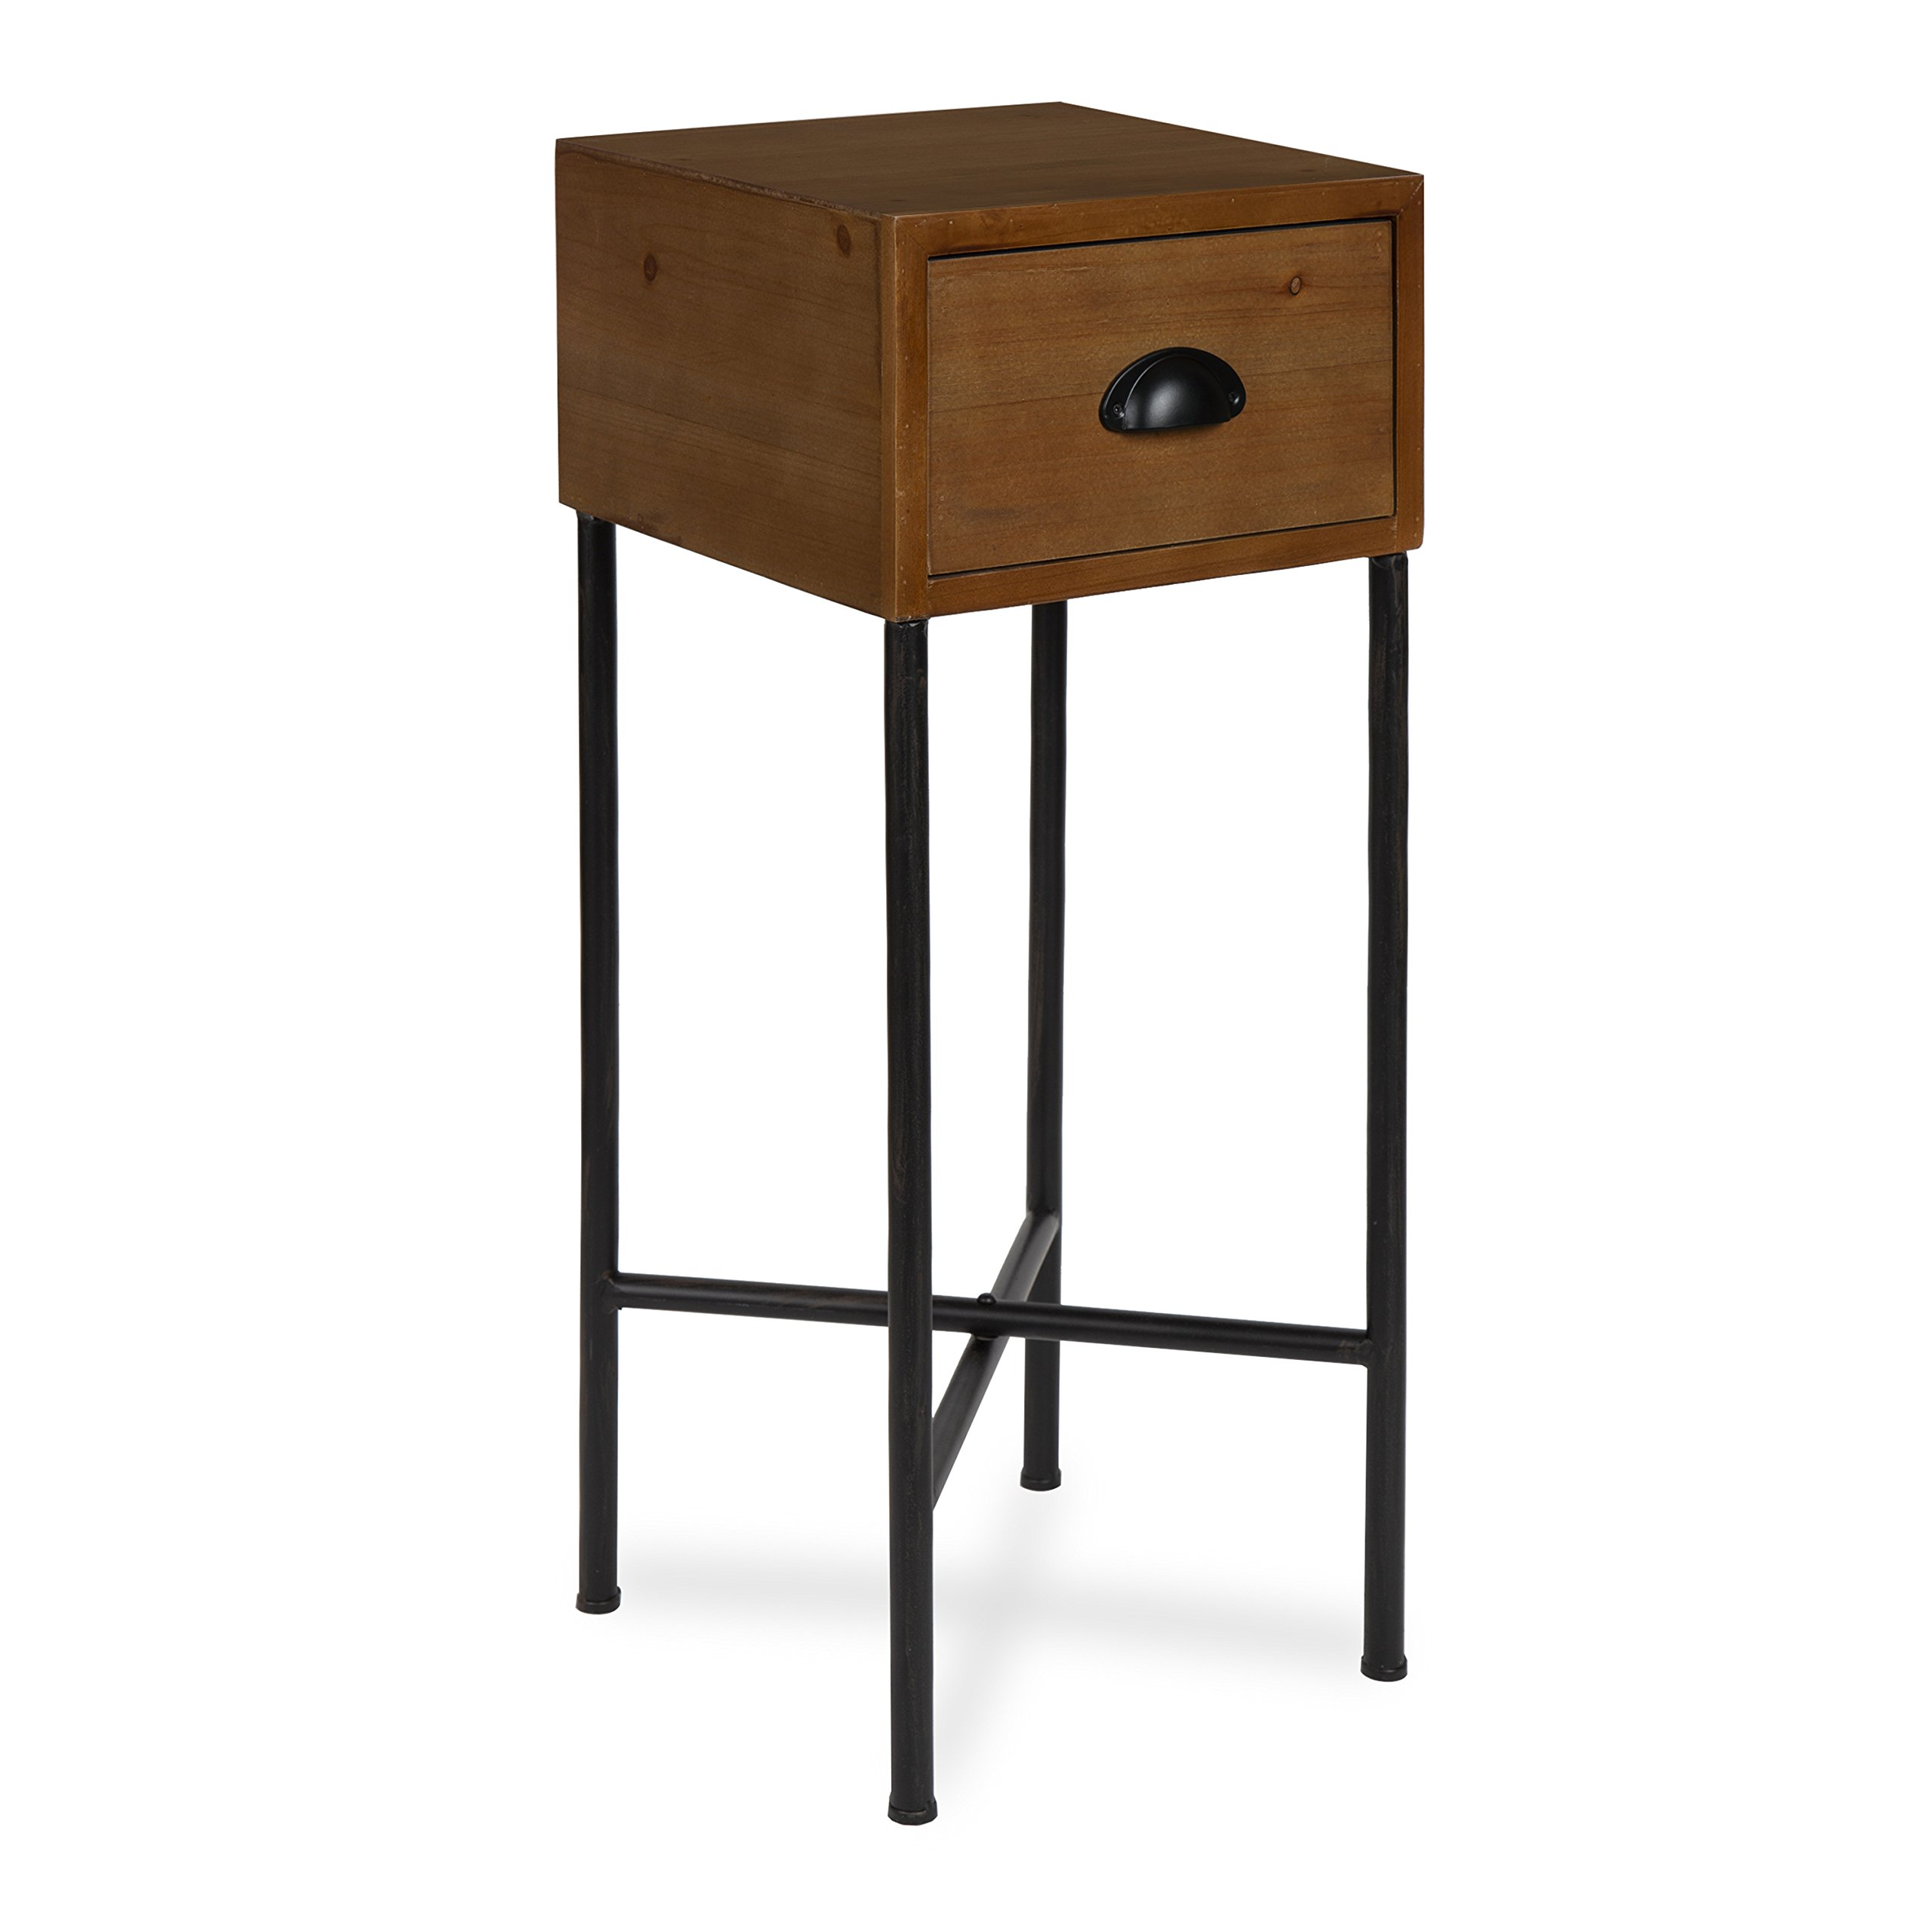 Kate and Laurel Decklyn Wood Side Accent Table with Drawer, Rustic Brown